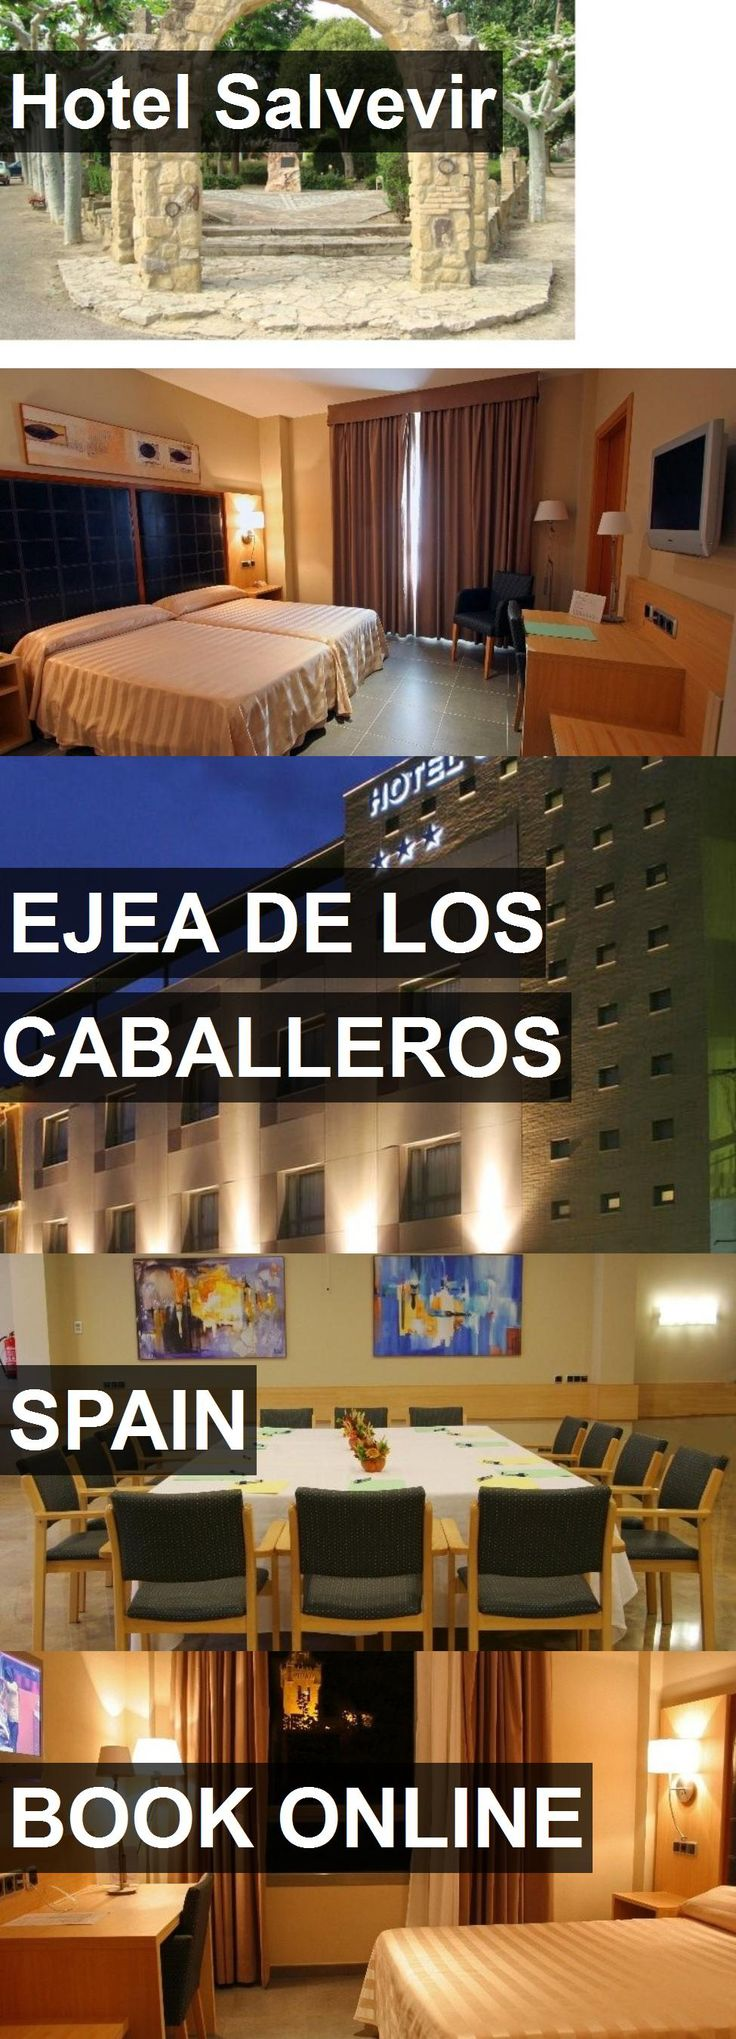 Hotel Hotel Salvevir in Ejea de los Caballeros, Spain. For more information, photos, reviews and best prices please follow the link. #Spain #EjeadelosCaballeros #HotelSalvevir #hotel #travel #vacation